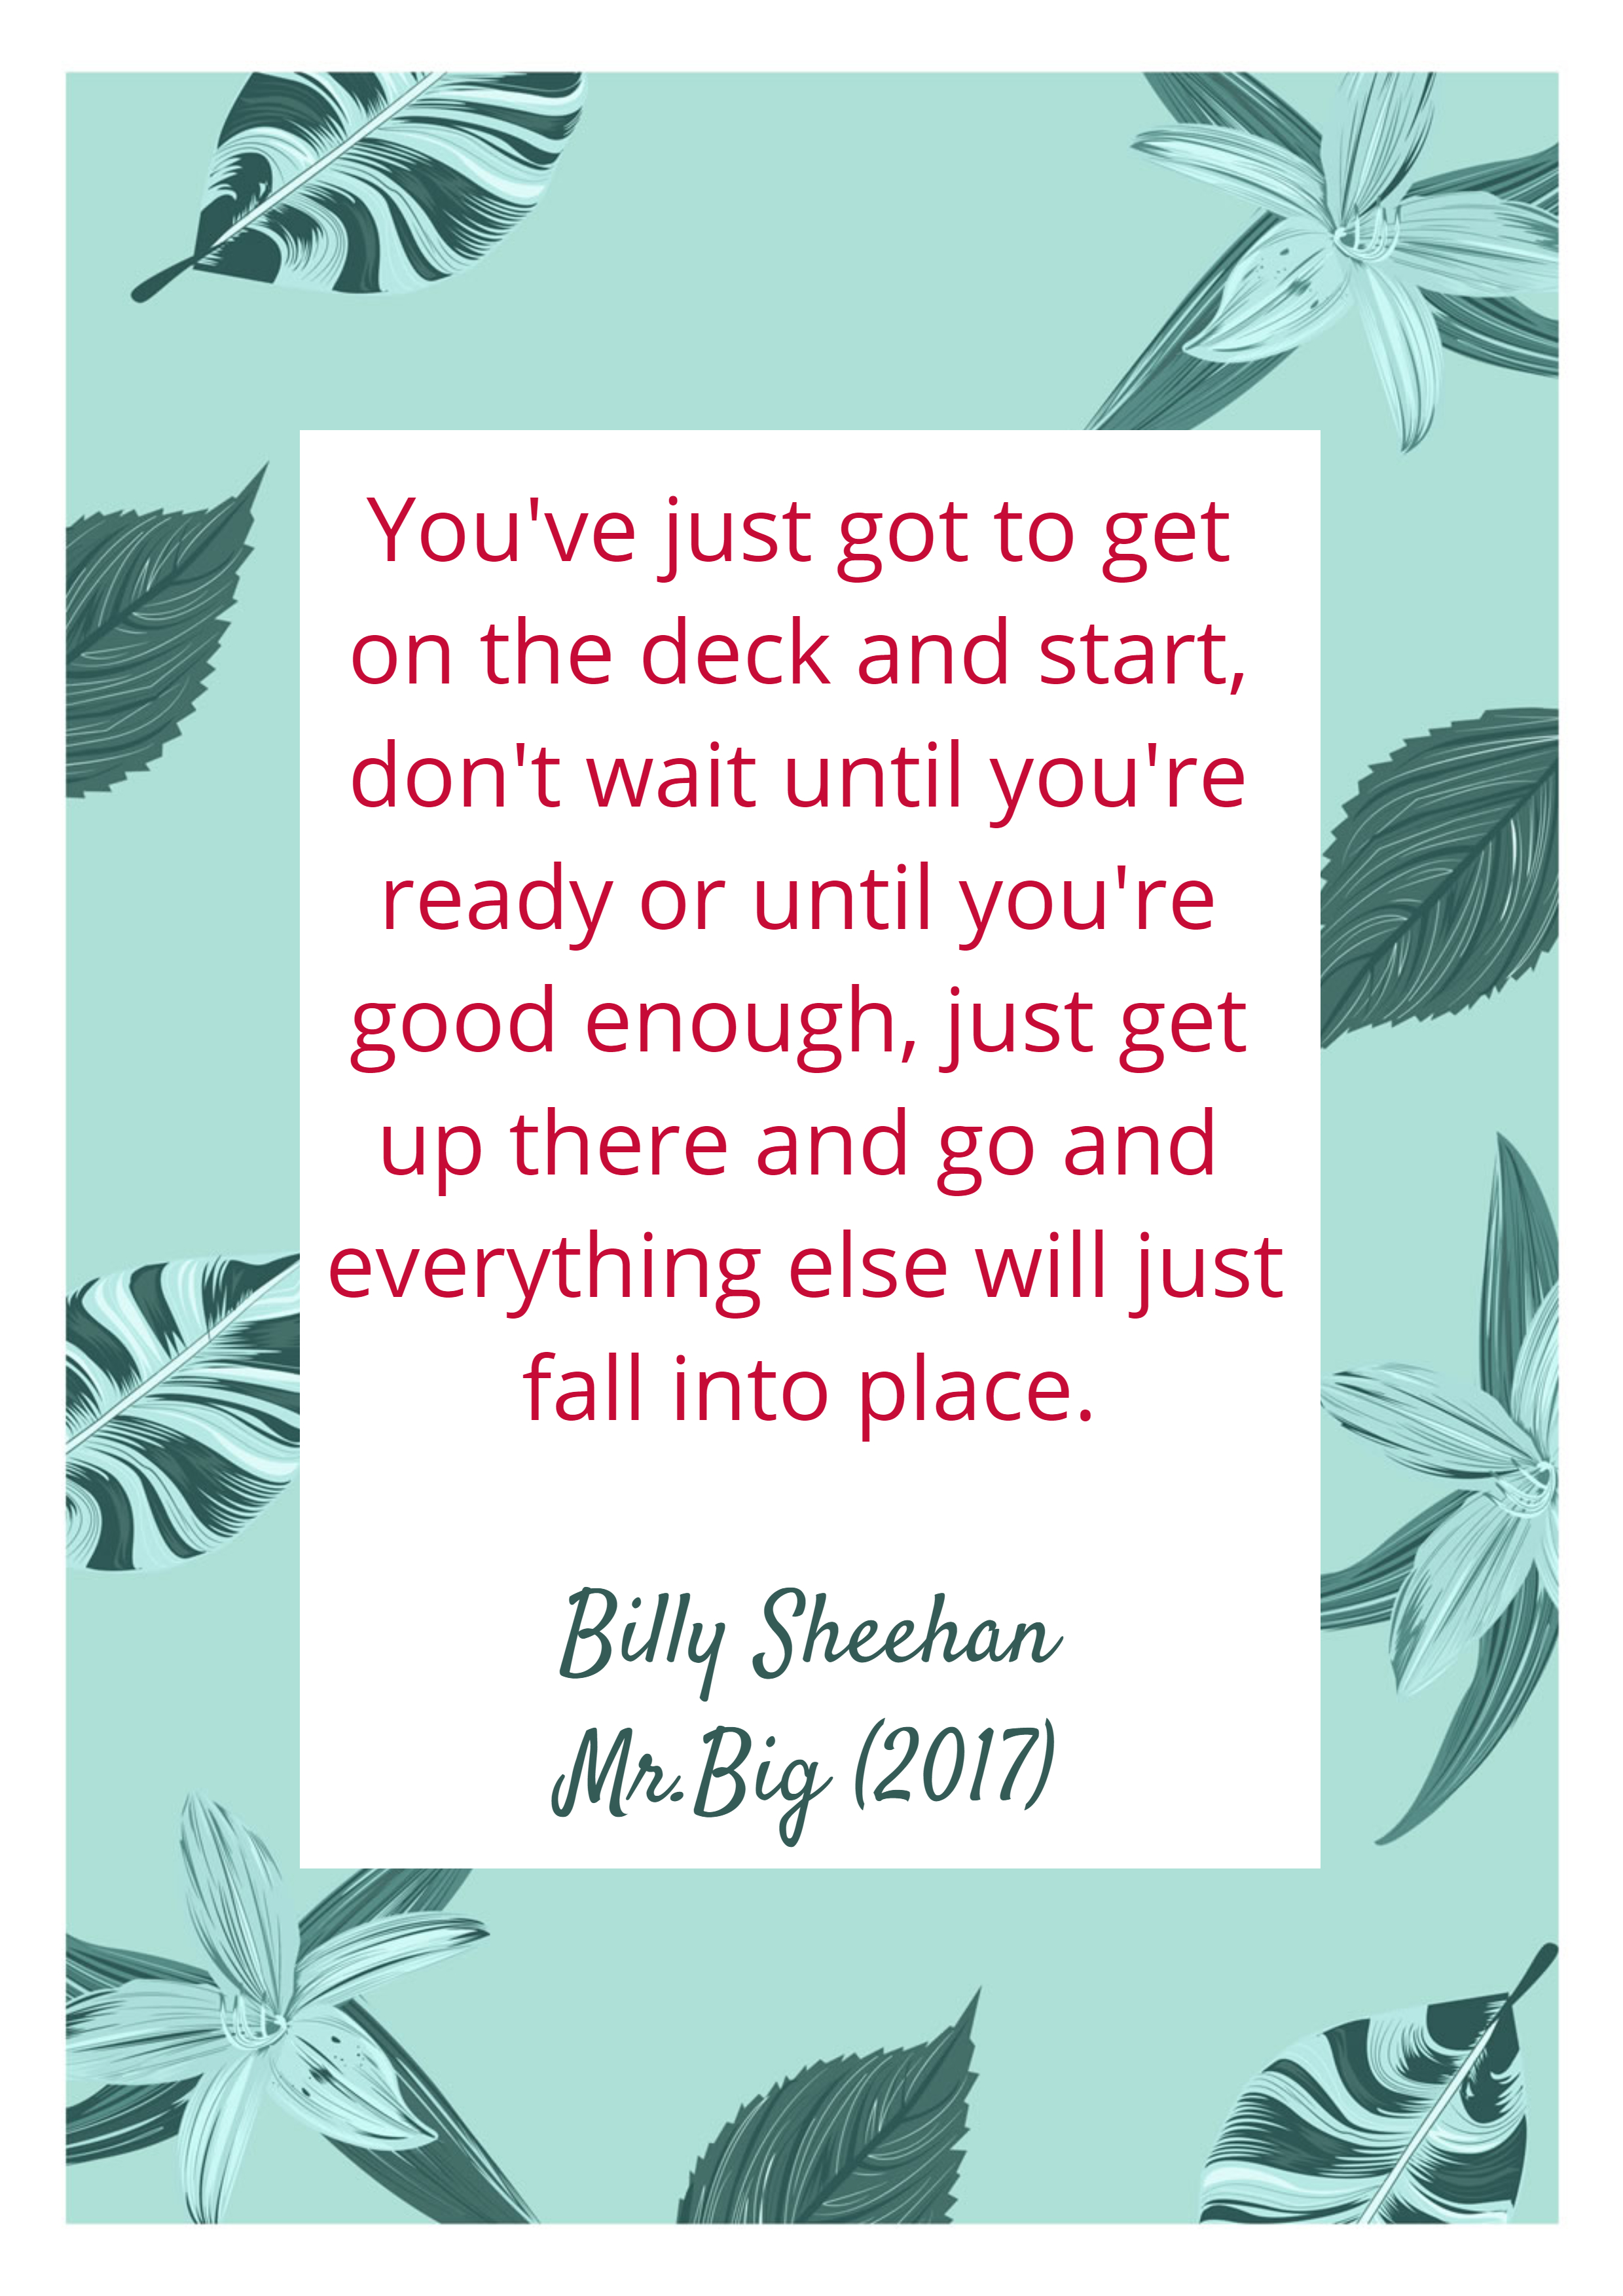 [IMAGE] You've got to get in there !